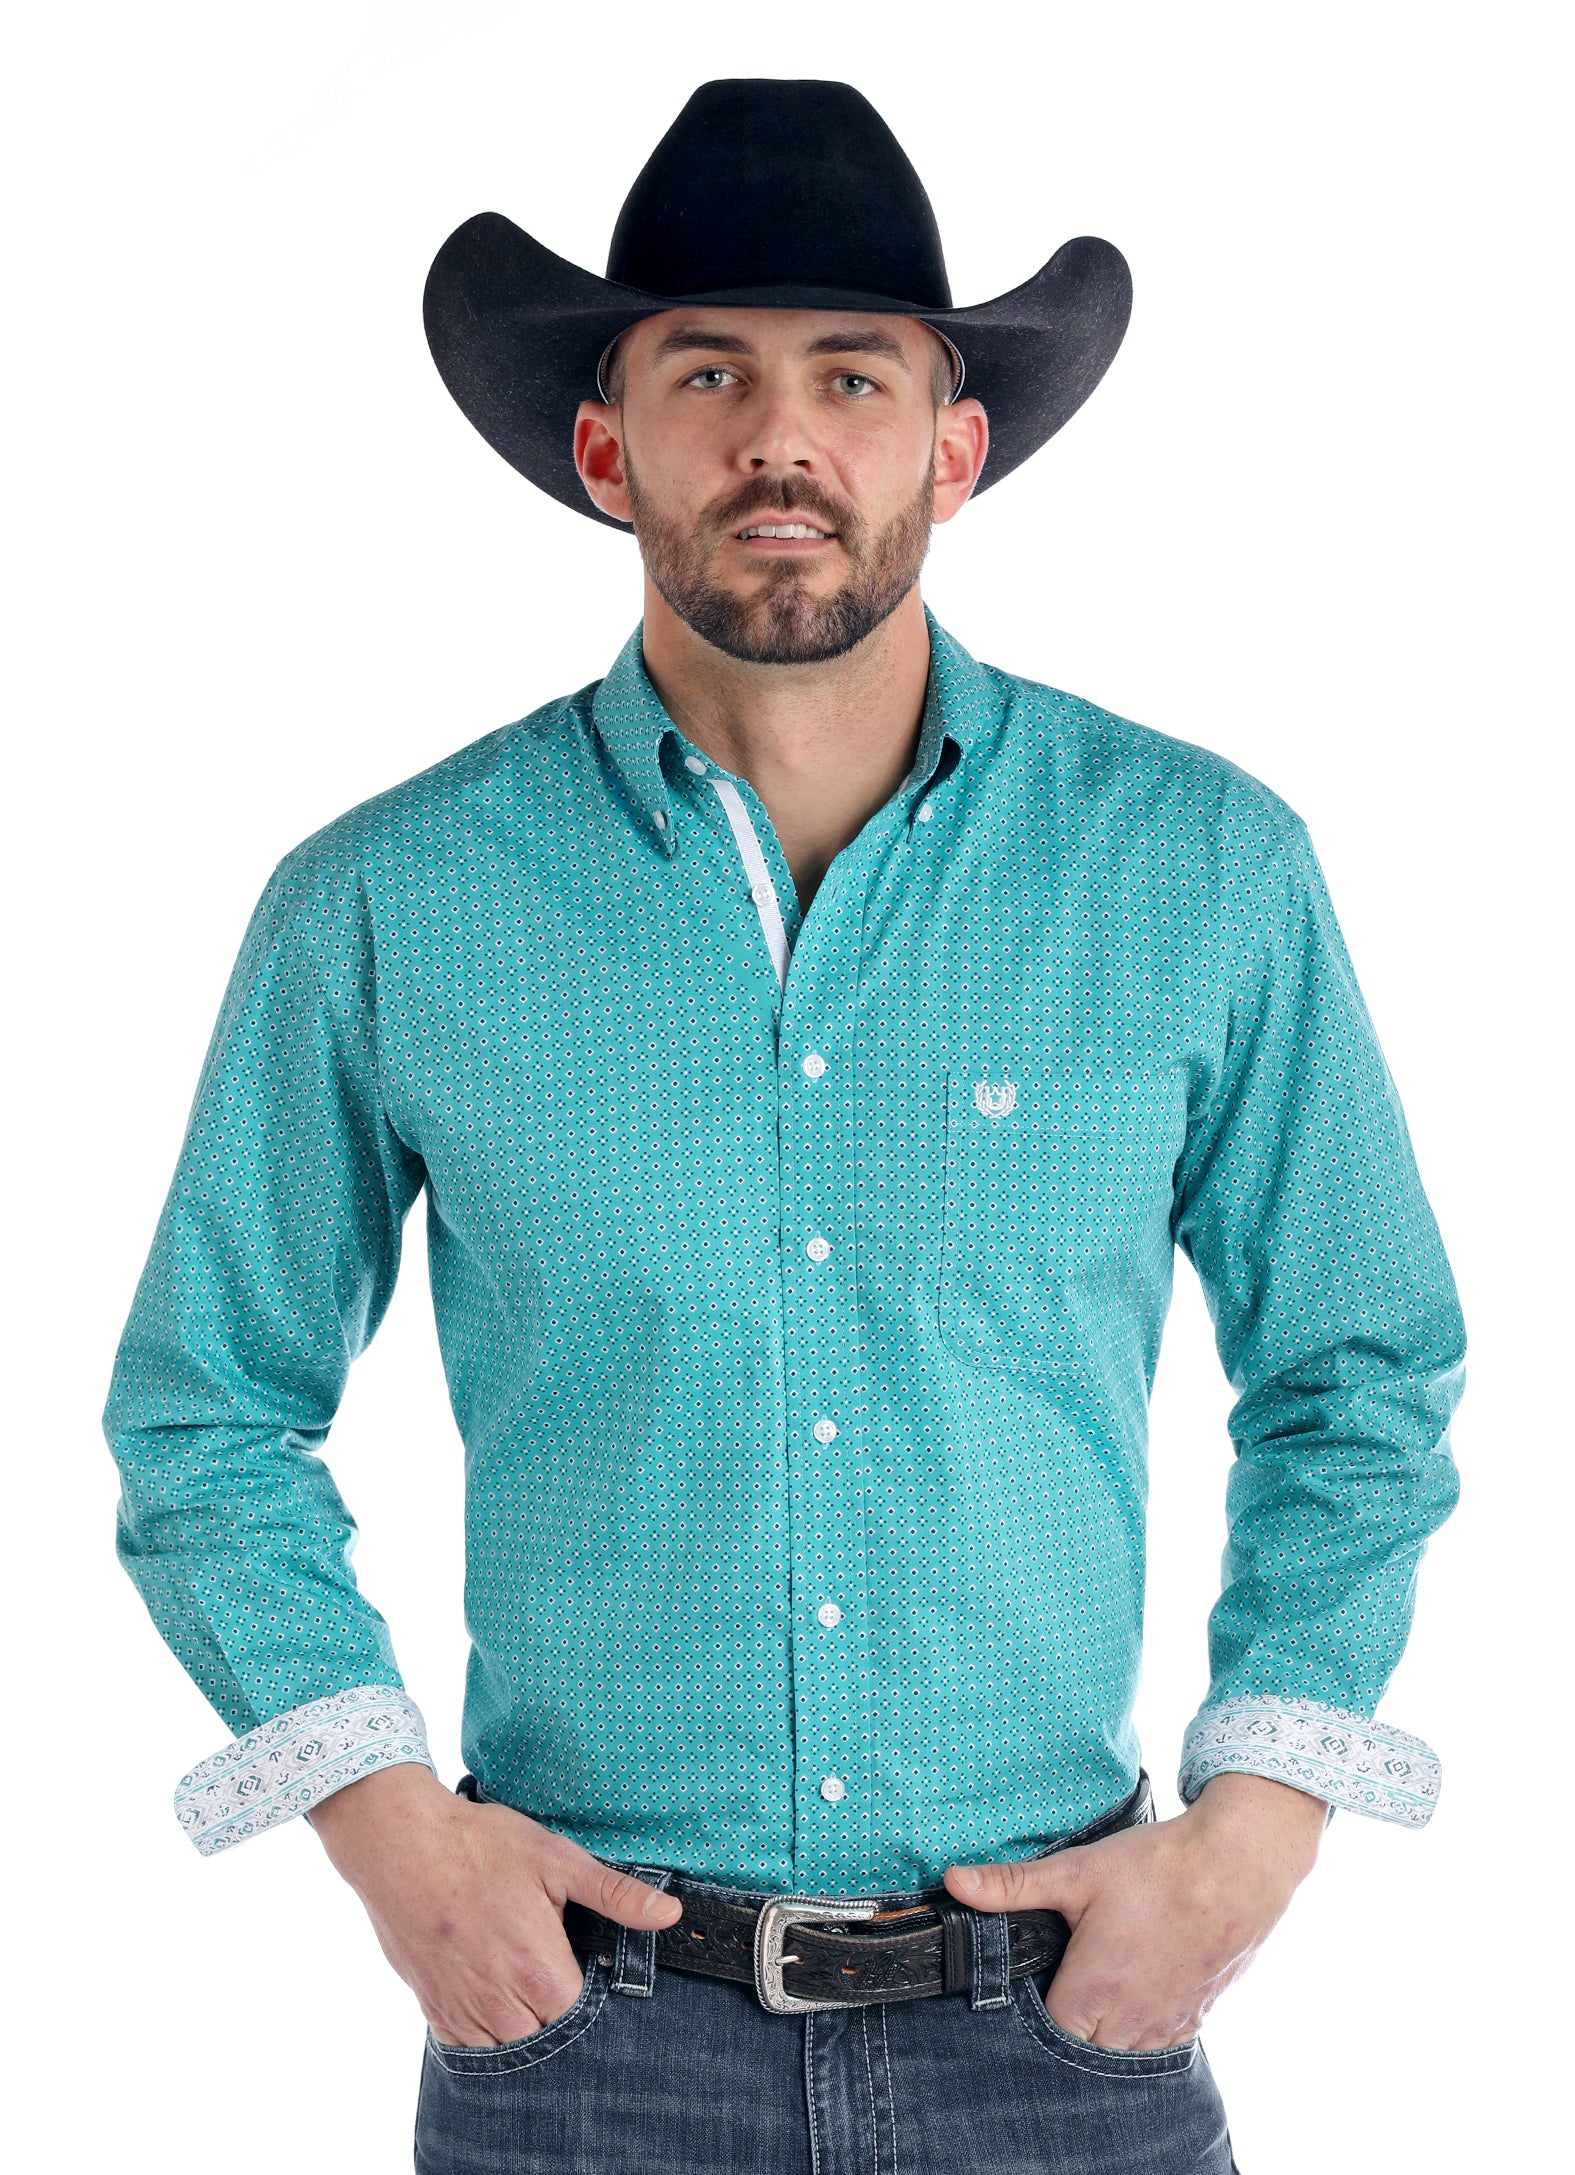 Panhandle Teal Rough Stock Men's Button Down Shirt